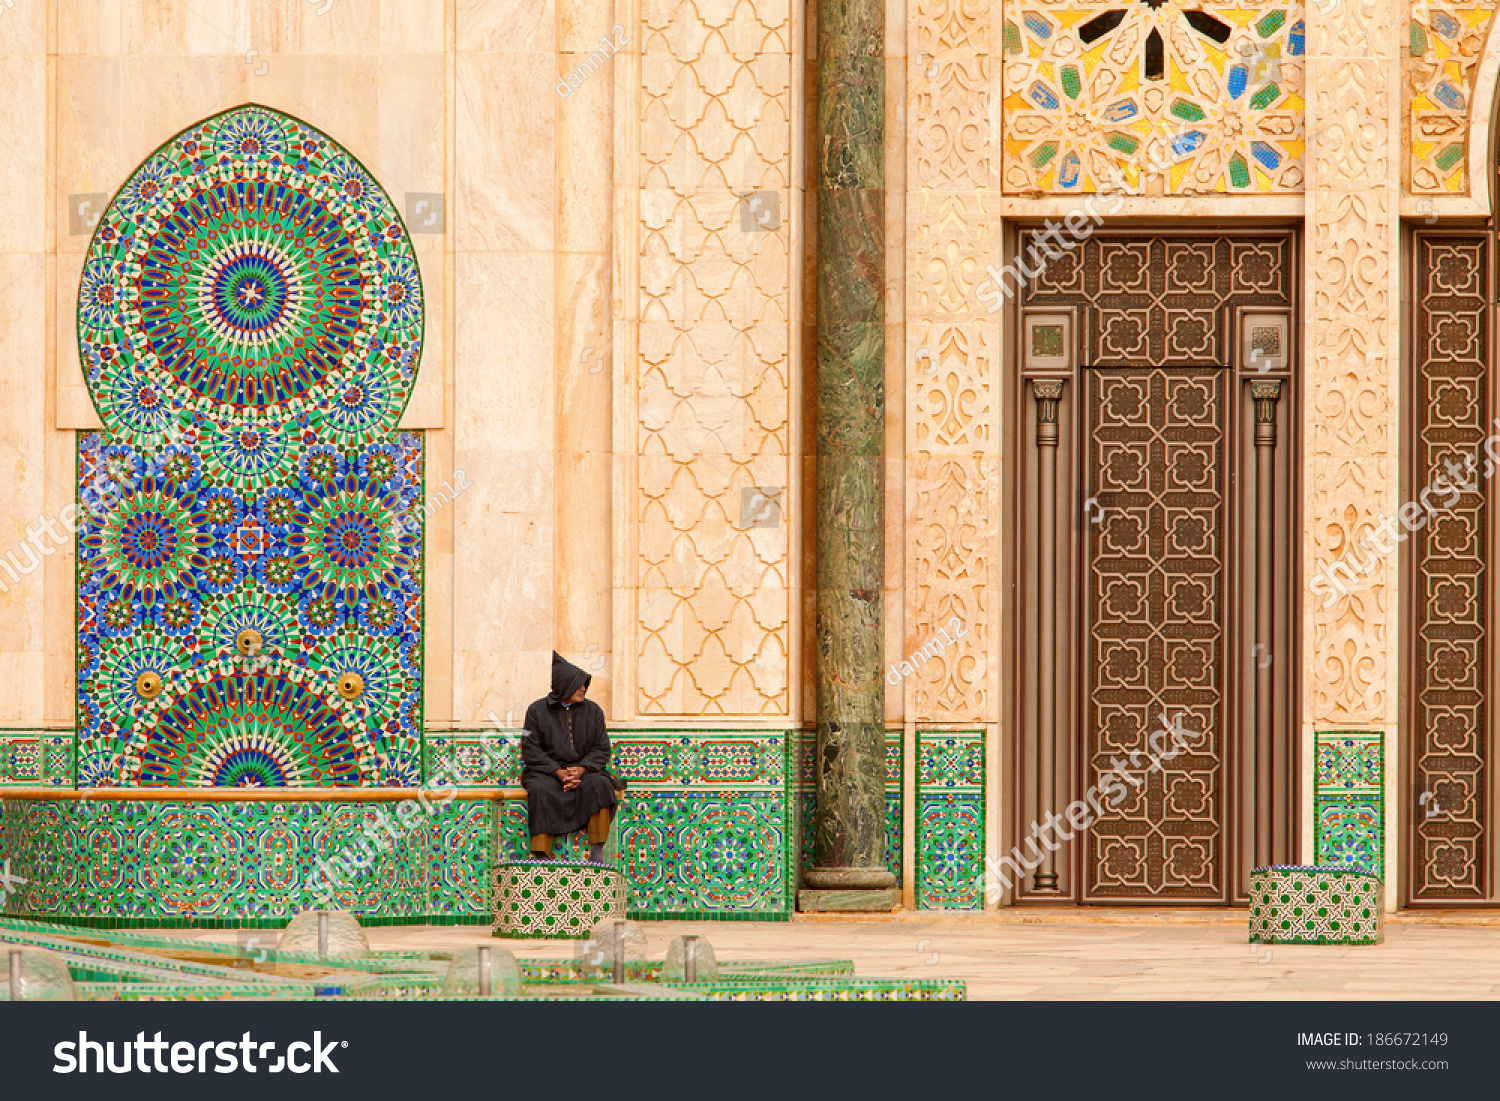 1100 #B86A13 Casablanca Morocco: Ornate Exterior Brass Door Of Hassan II Mosque In  picture/photo Ornate Front Doors 39791500